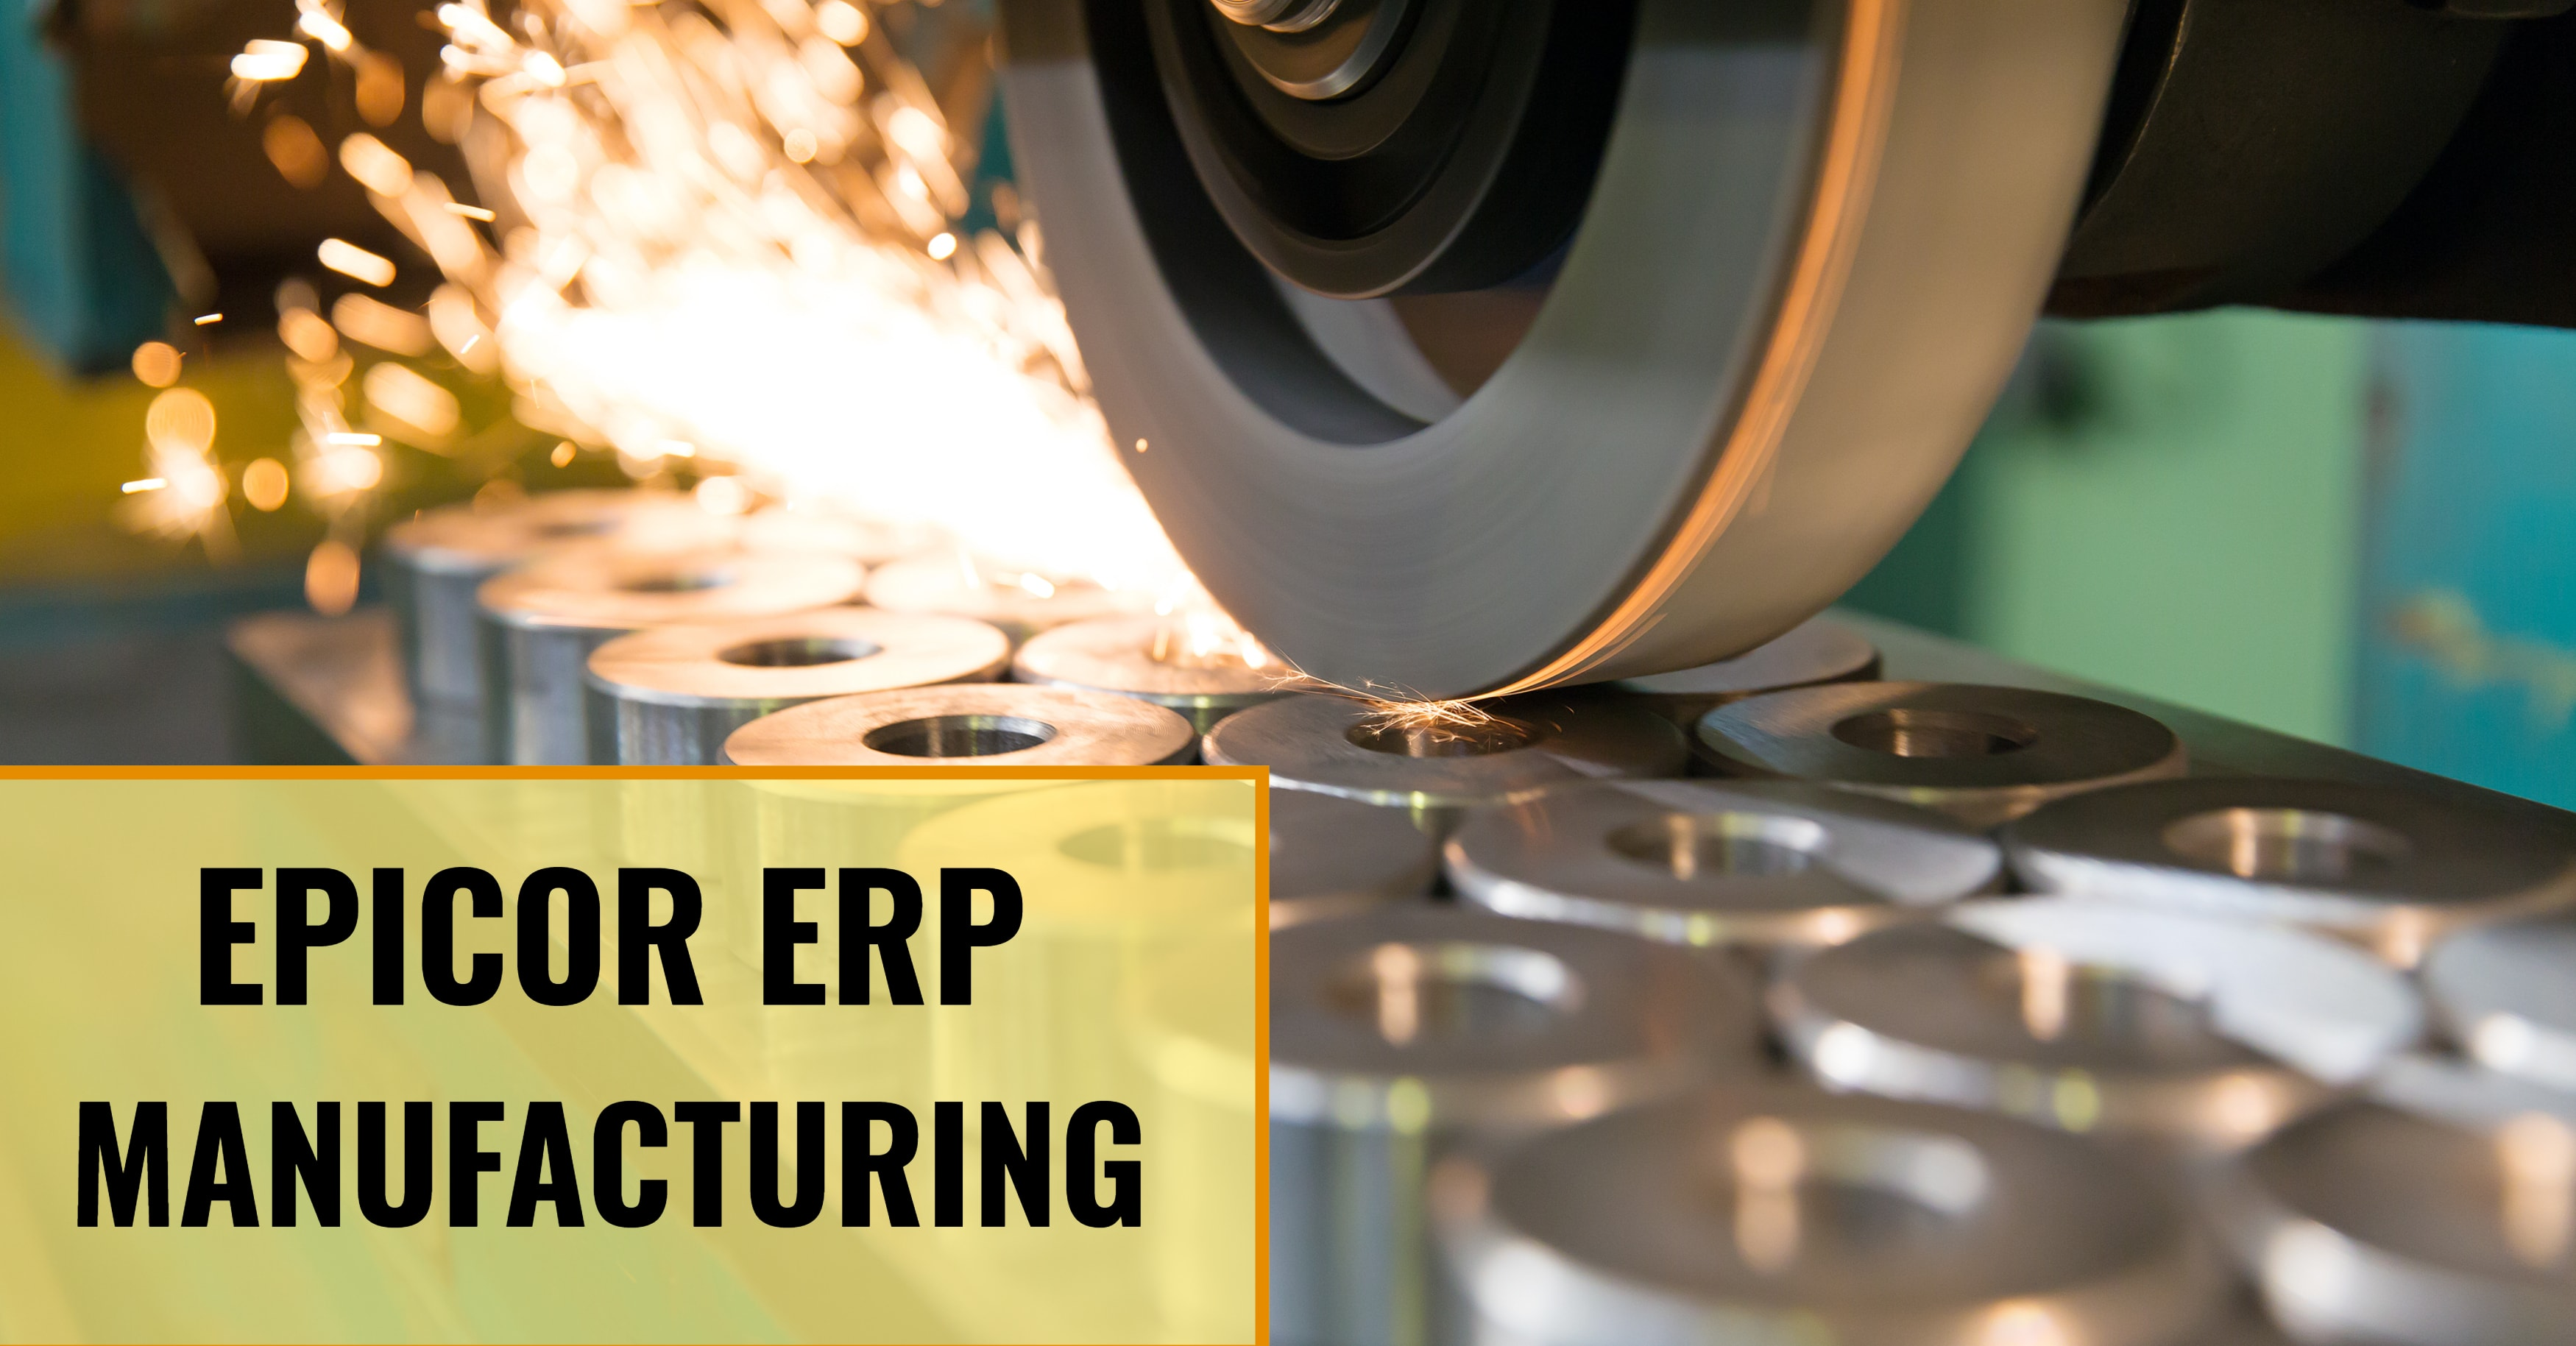 How Does Epicor Drive Value for Manufacturers?